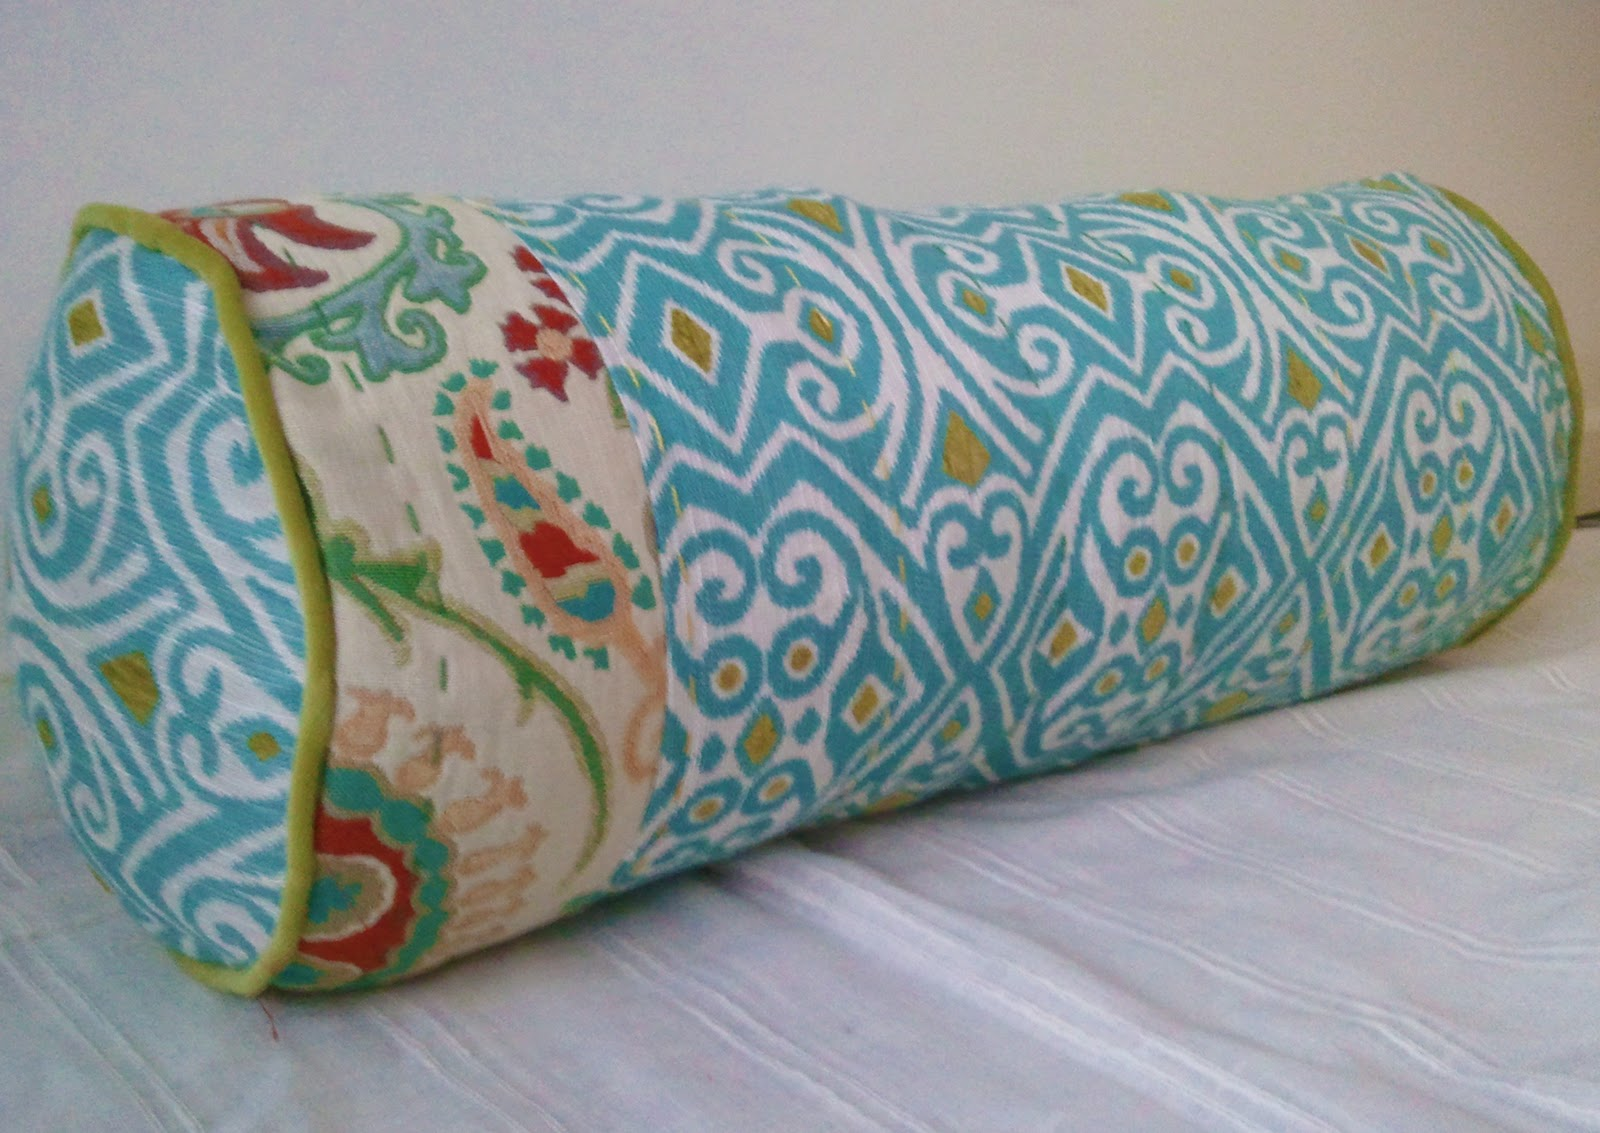 Sew homegrown diy anthropologie inspired bolster pillow Sew bolster pillow cover